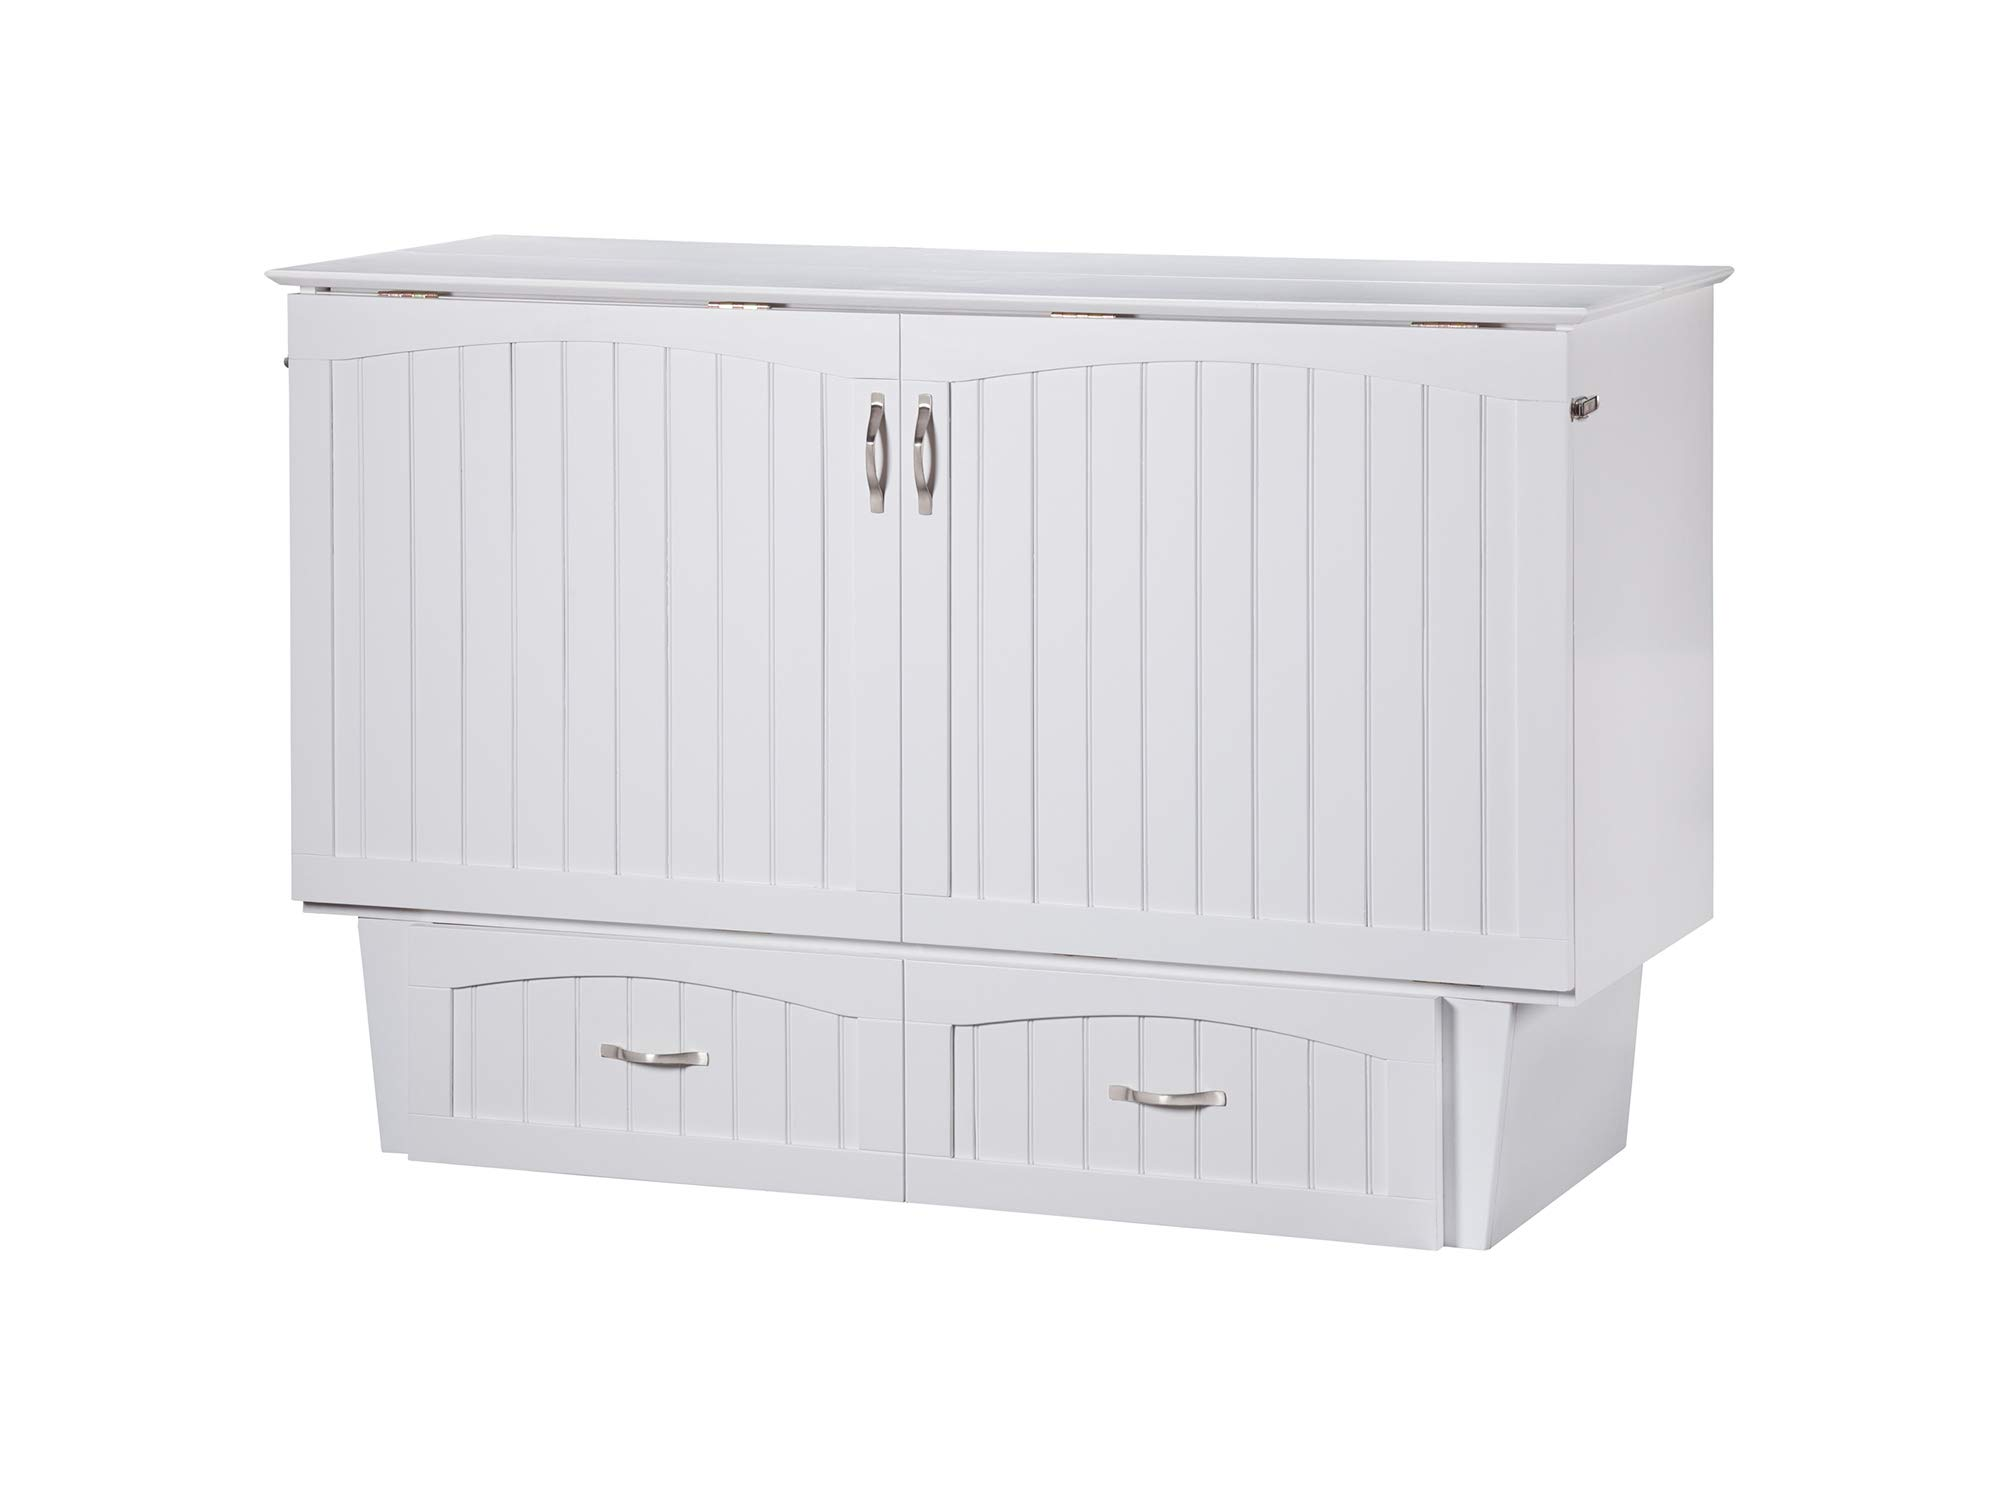 Atlantic Furniture Nantucket Murphy Bed Chest with Charging Station & Mattress, Queen, White by Atlantic Furniture